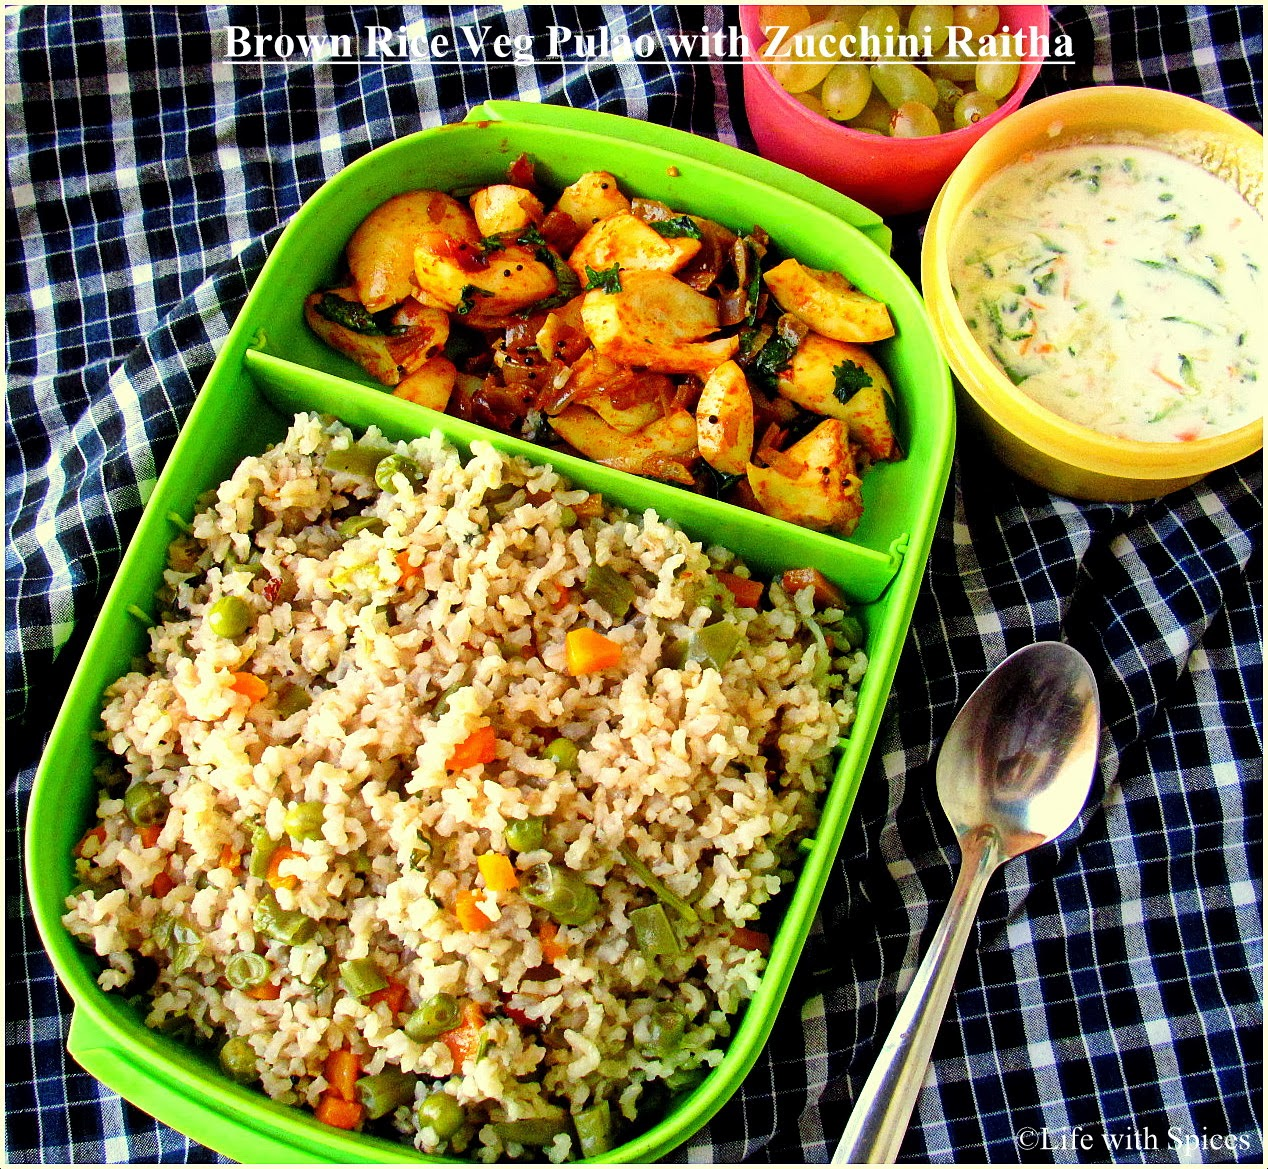 Life With Spices Brown Rice Vegetable Pulao